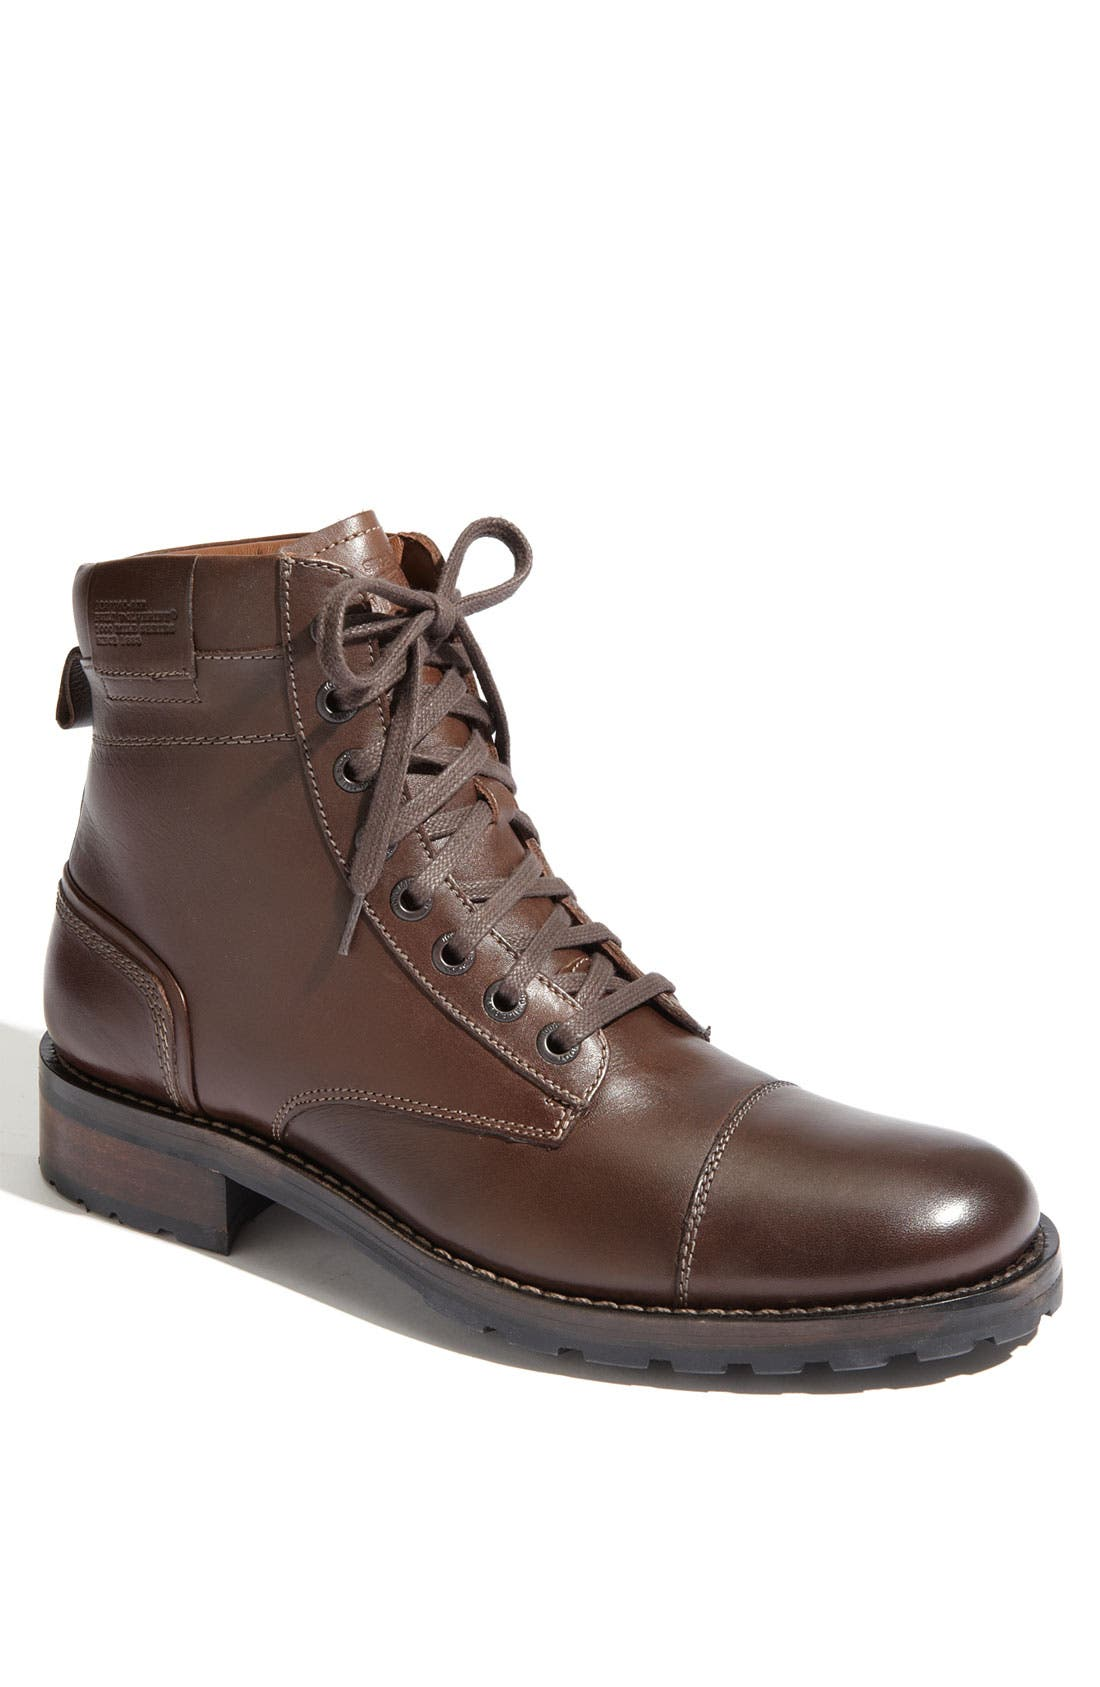 Main Image - Wolverine 'Montgomery' Lace-Up Boot